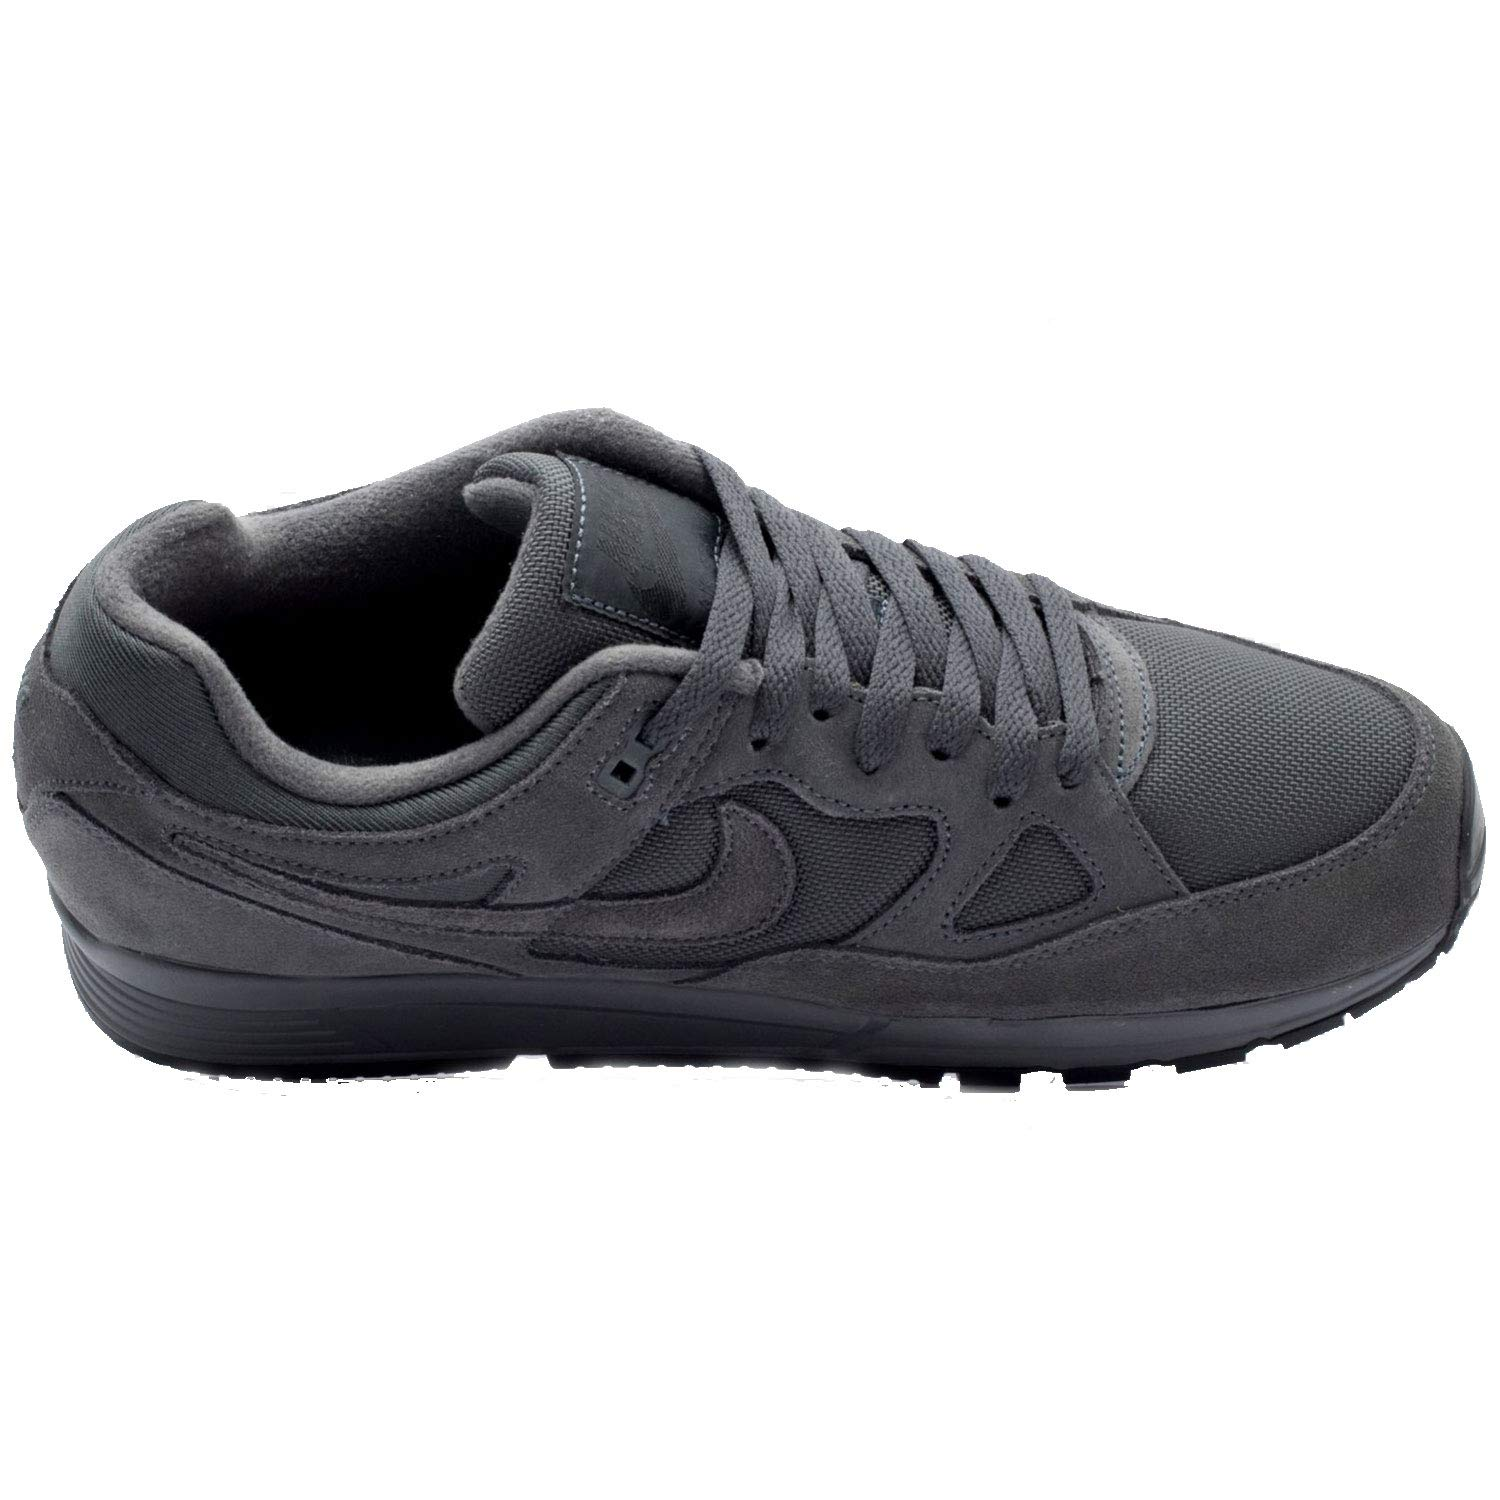 6b423f5863d1b Amazon.com | Nike Men's Air Span II PRM Anthracite/Dark Grey/Black AO1546- 001 (Size: 10) | Shoes